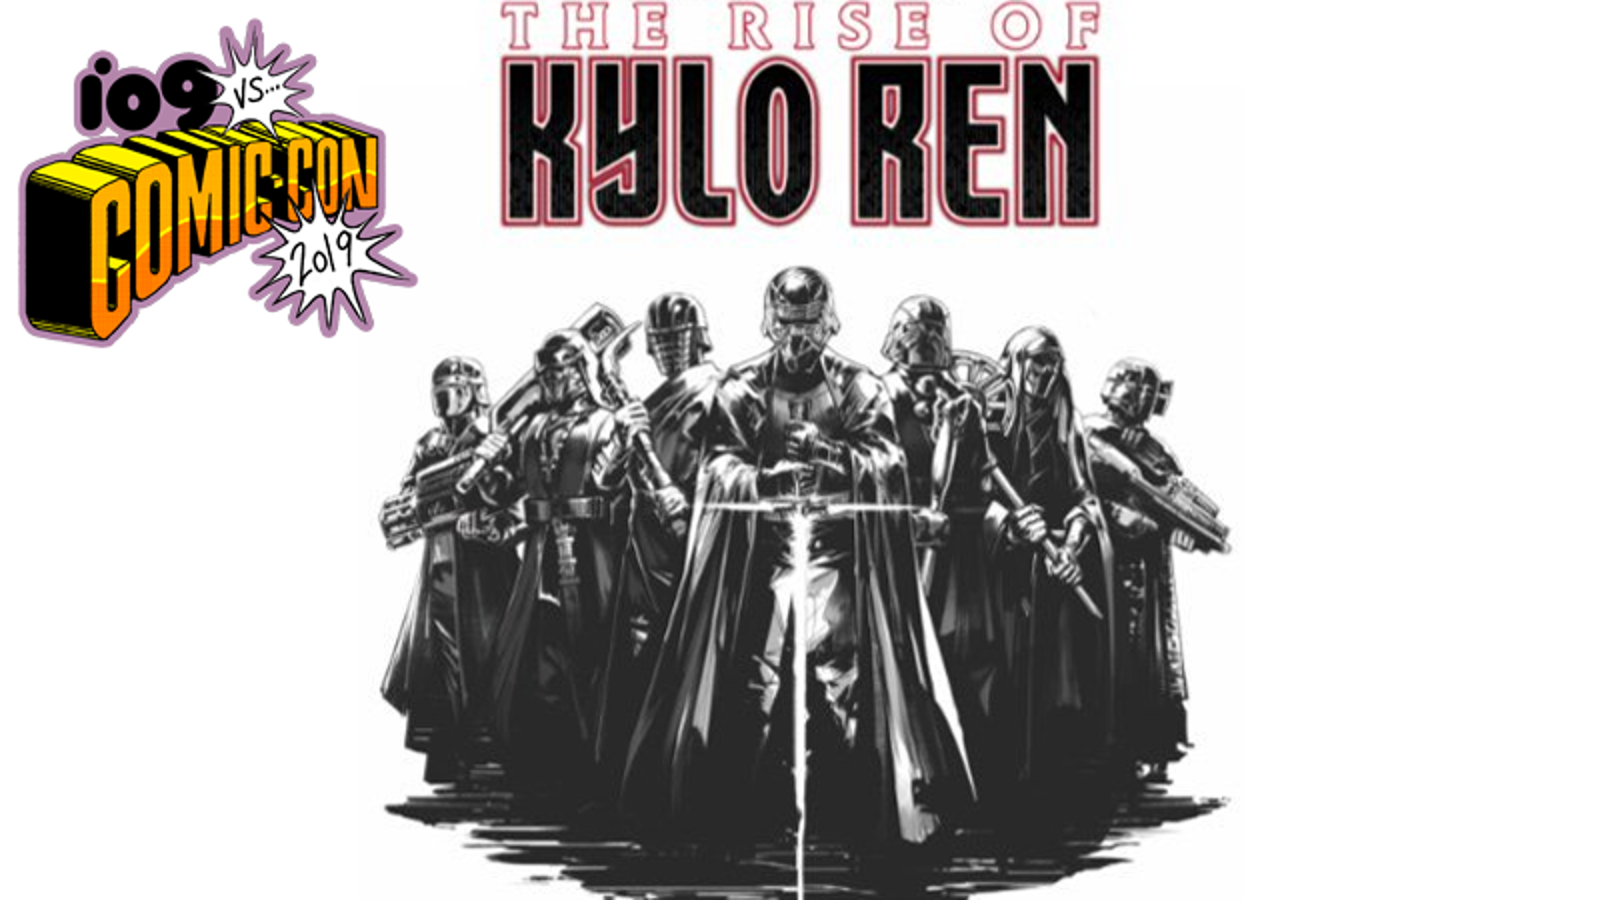 Charles Soule's Next Star Wars Comic Will Tell Us the Story Behind the Knights of Ren